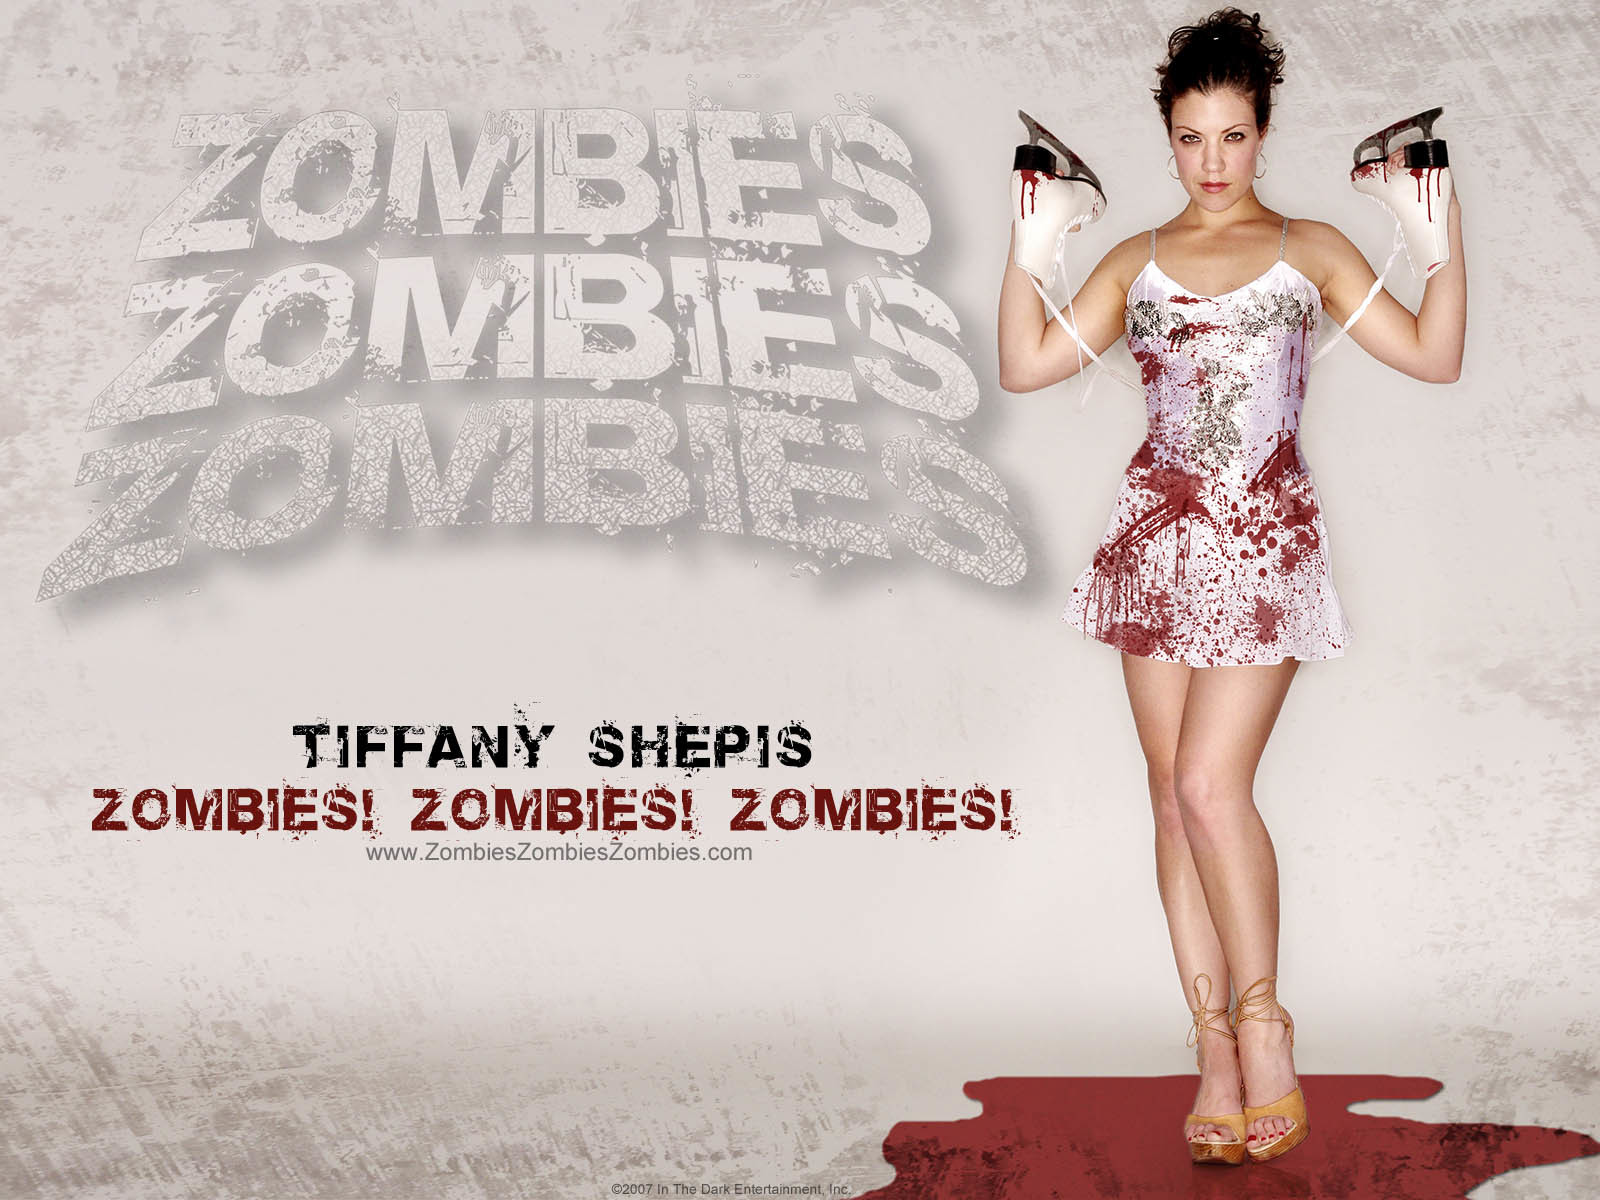 zombies tiffany shepis ice HD Wallpaper